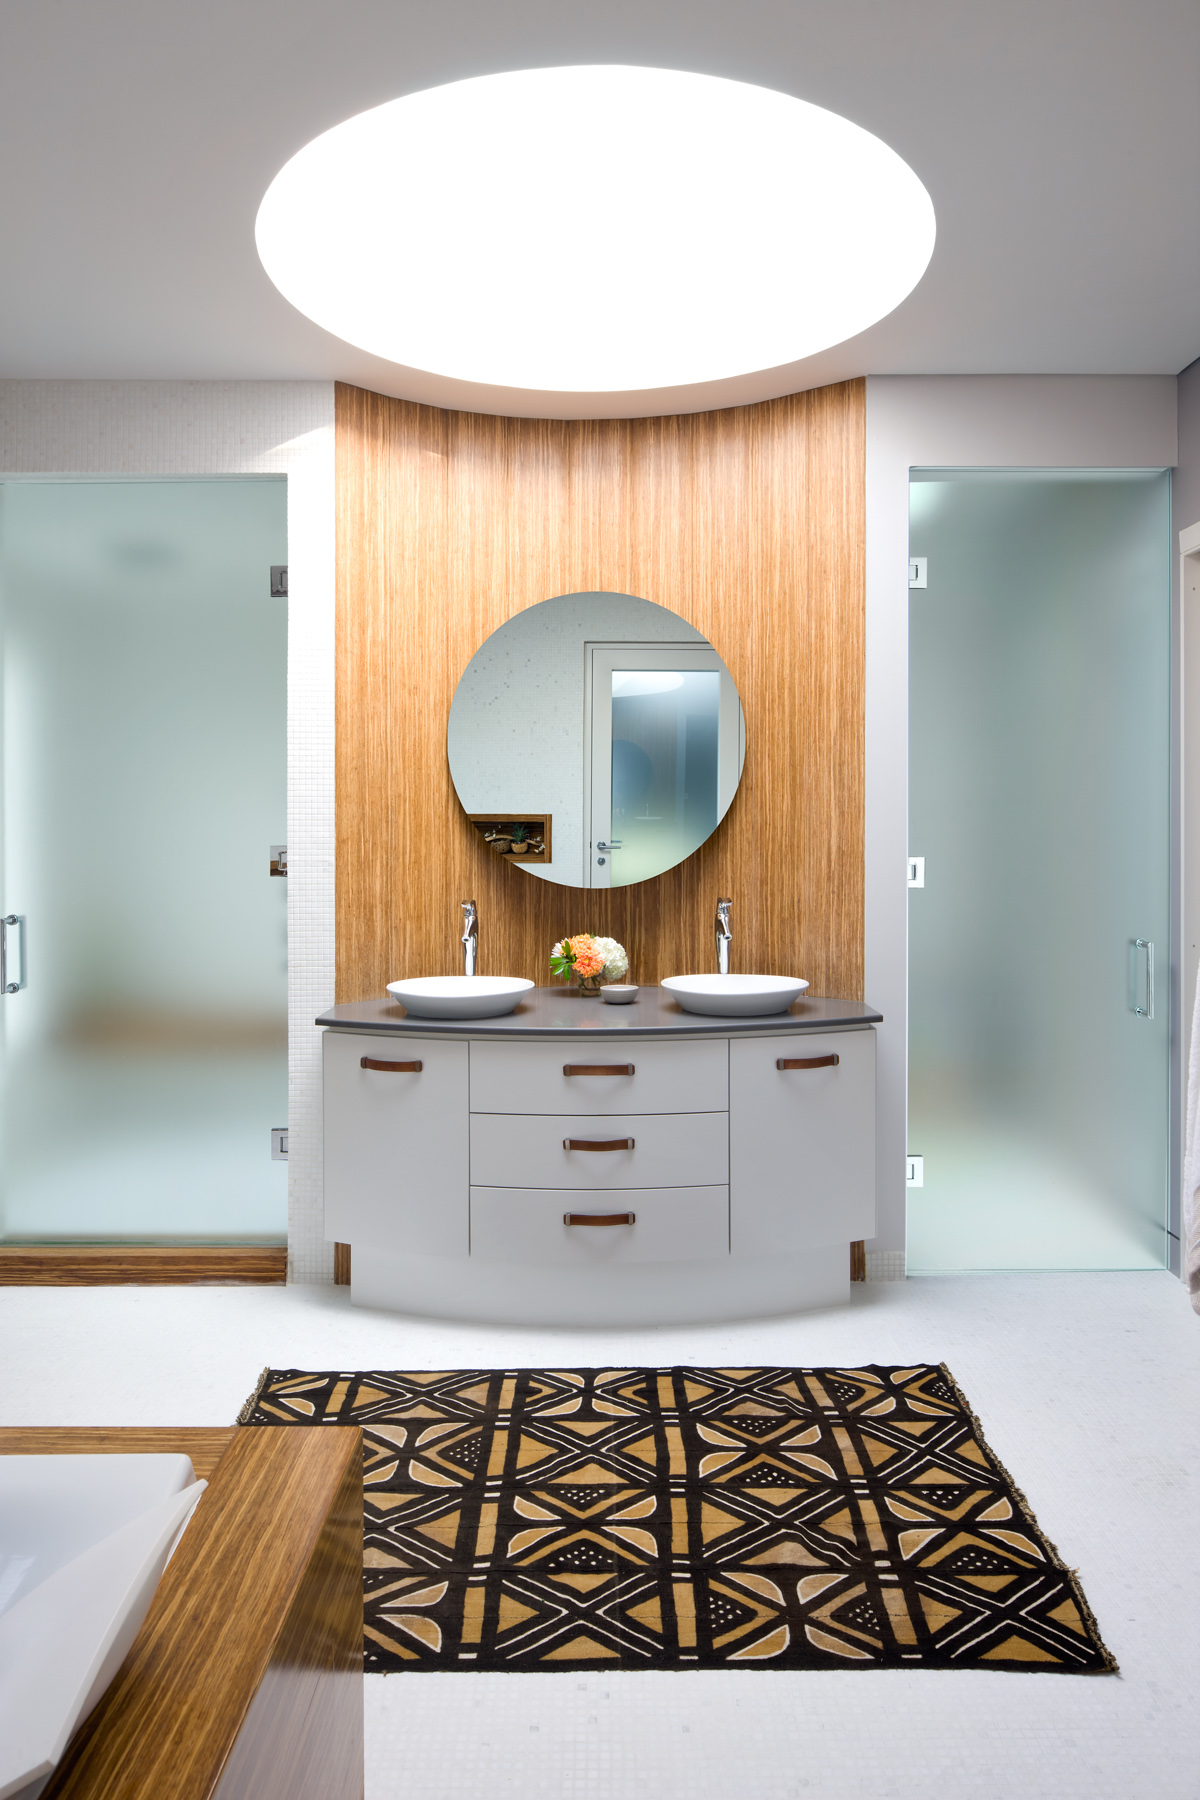 Master bathroom vanity with a giant skylight. by Estee Design